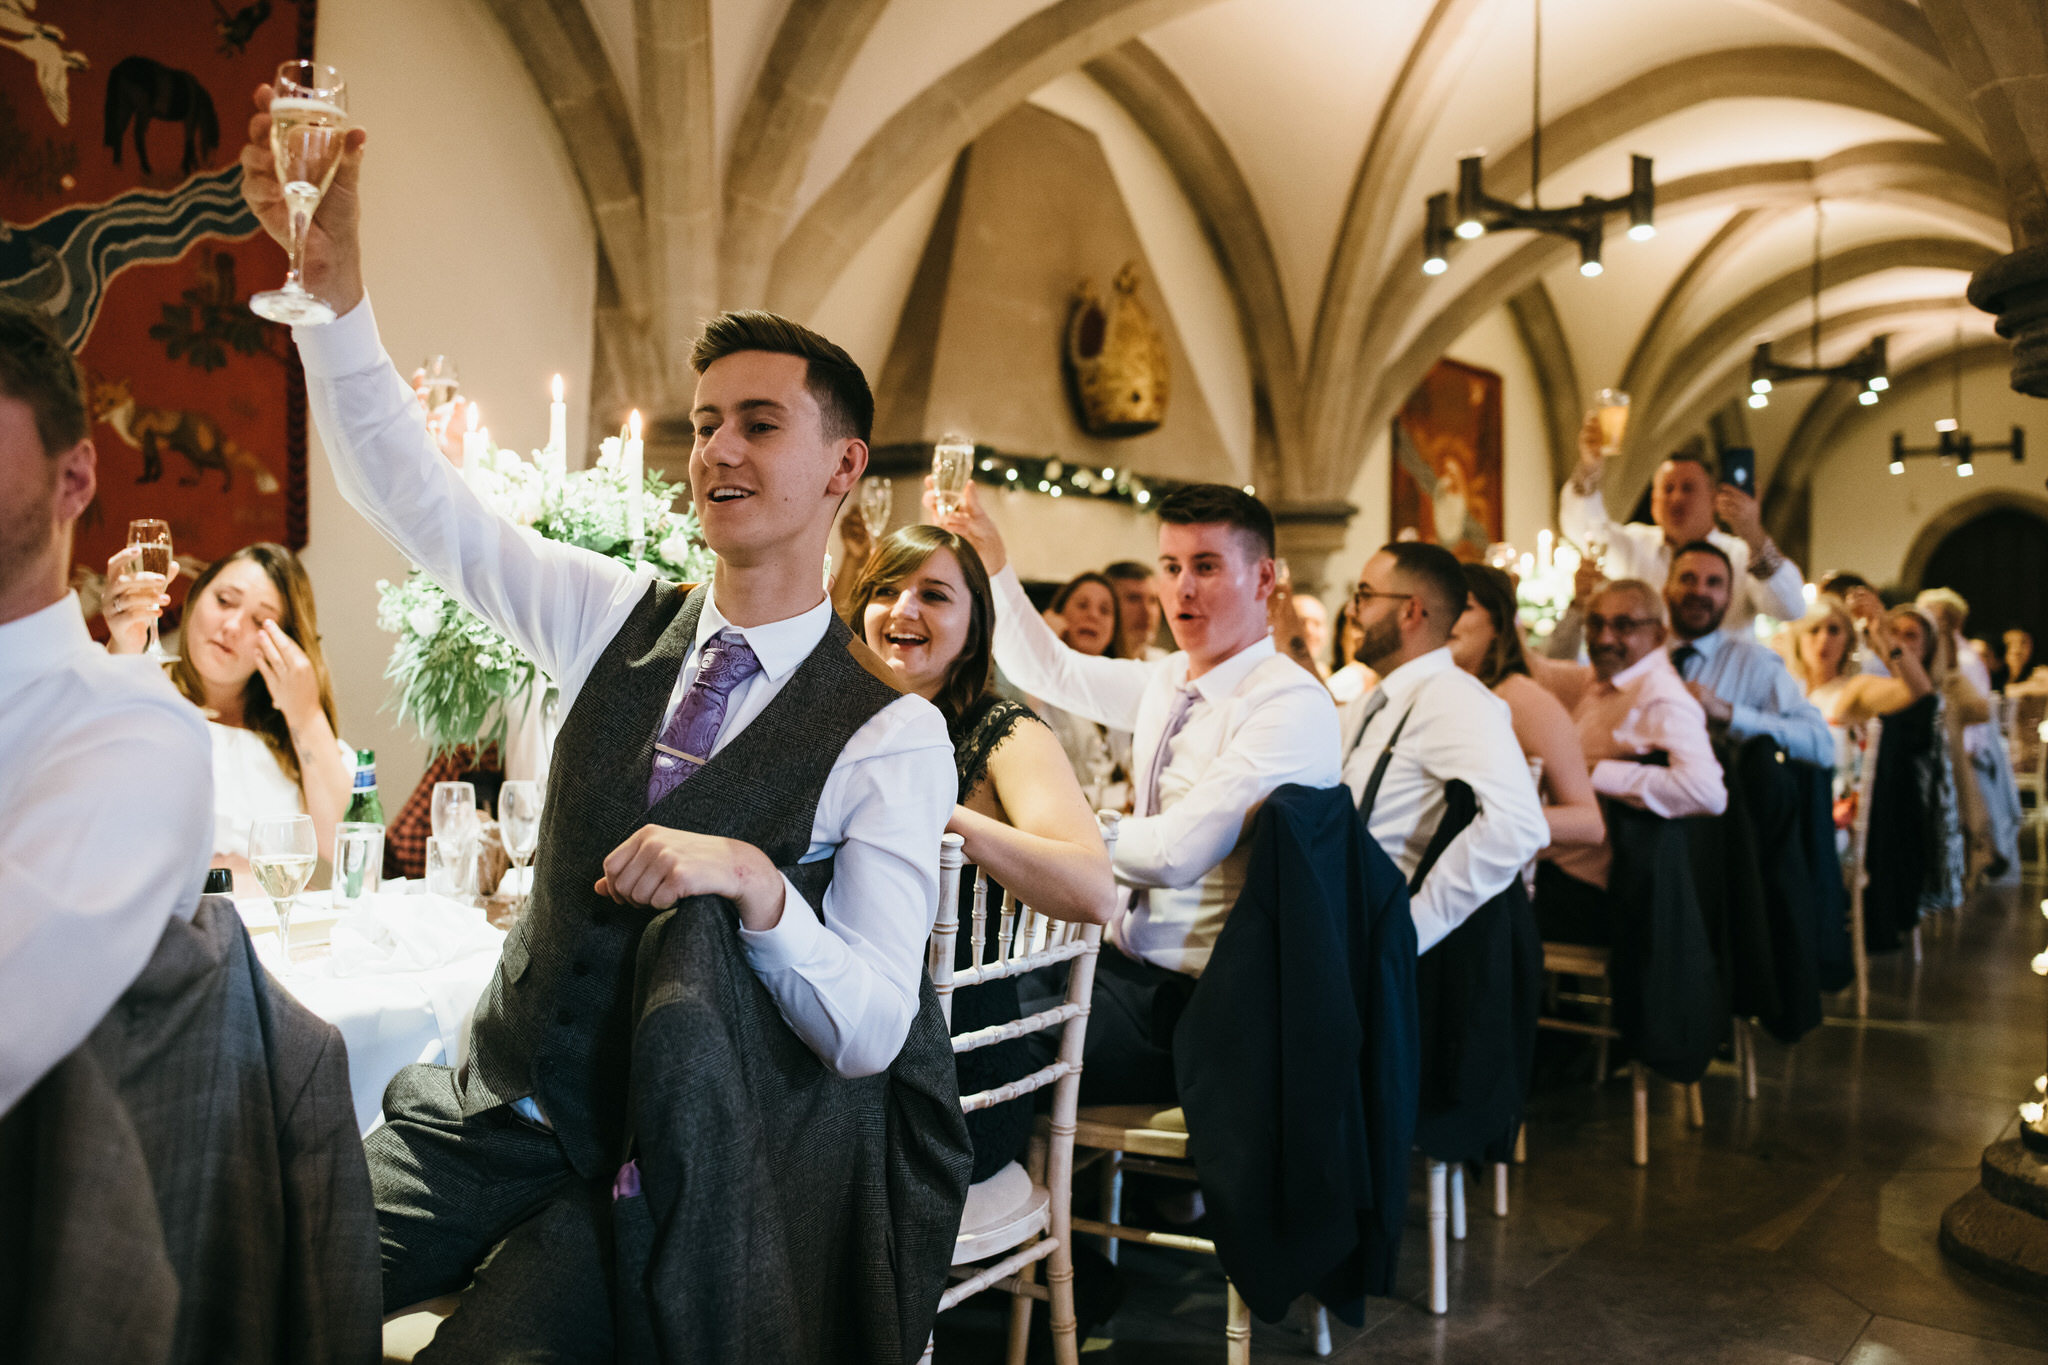 Raising a toast at Bishops palace wedding speeches